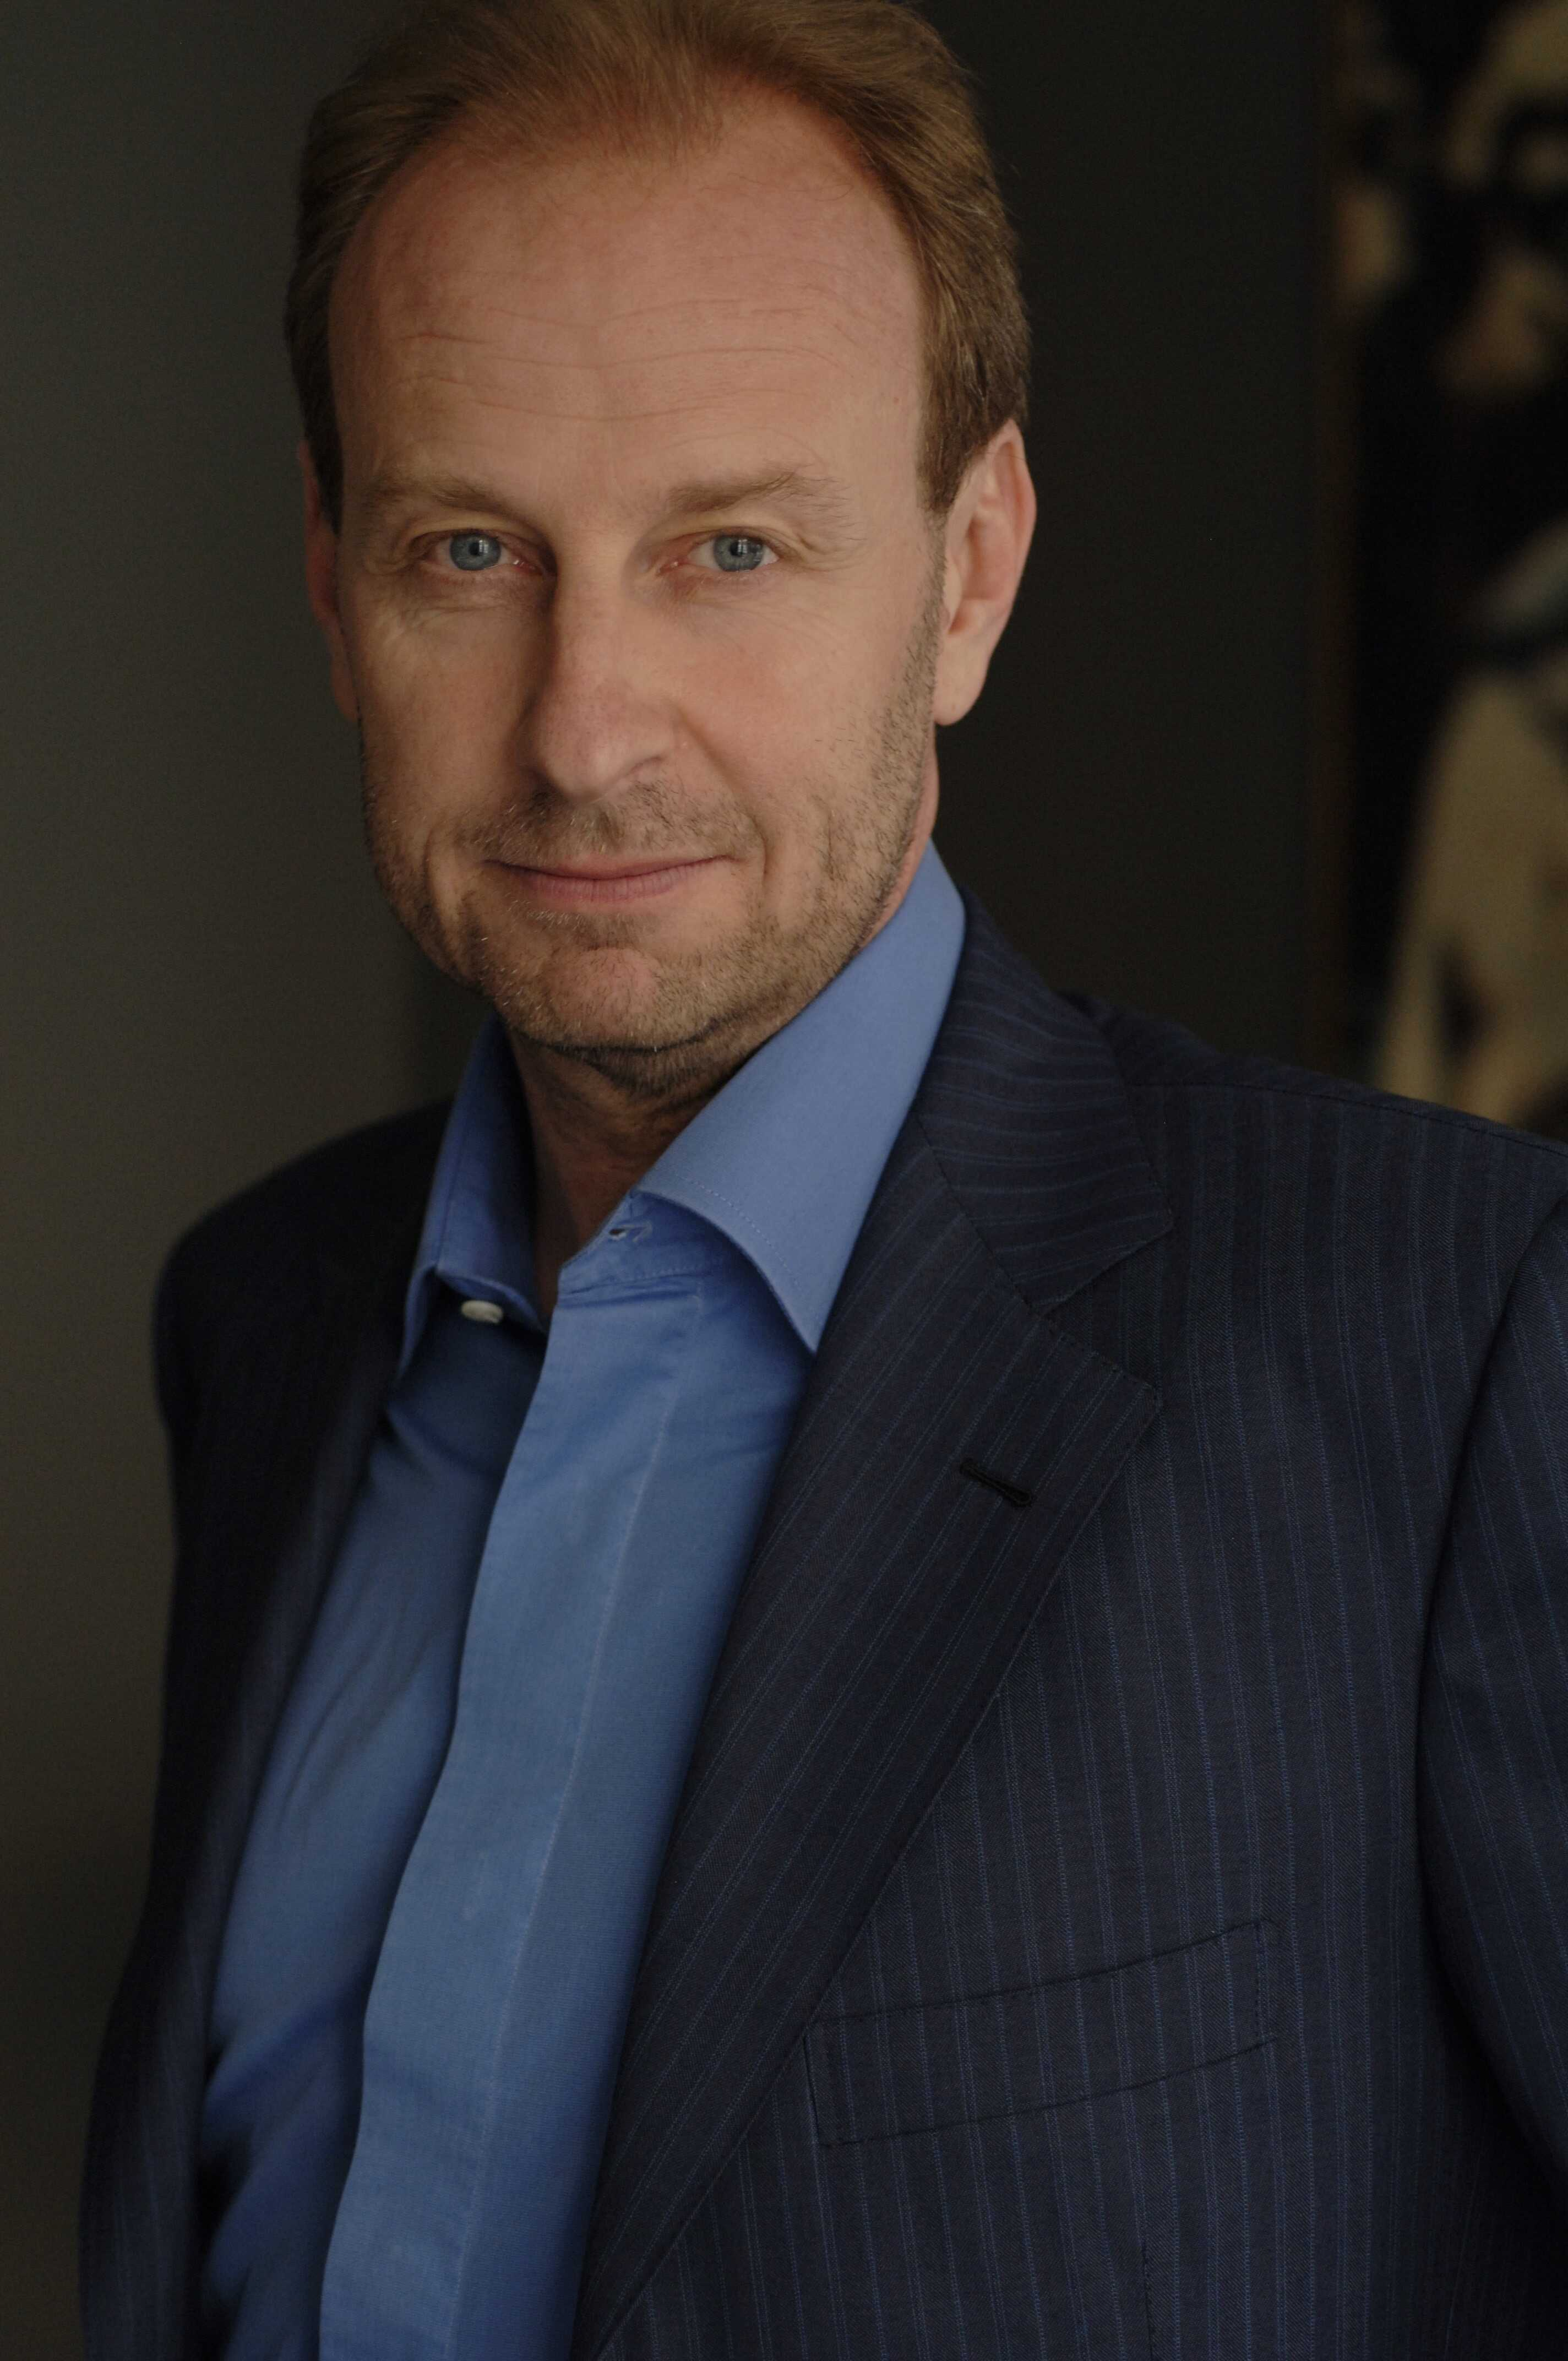 Yves Bouvier faces litigation in three continents for allegedly having defrauded Dimitry Rybolovlev out of as much as US$1 billion (Photo: Hpetit21, CC SA-BY 3.0)